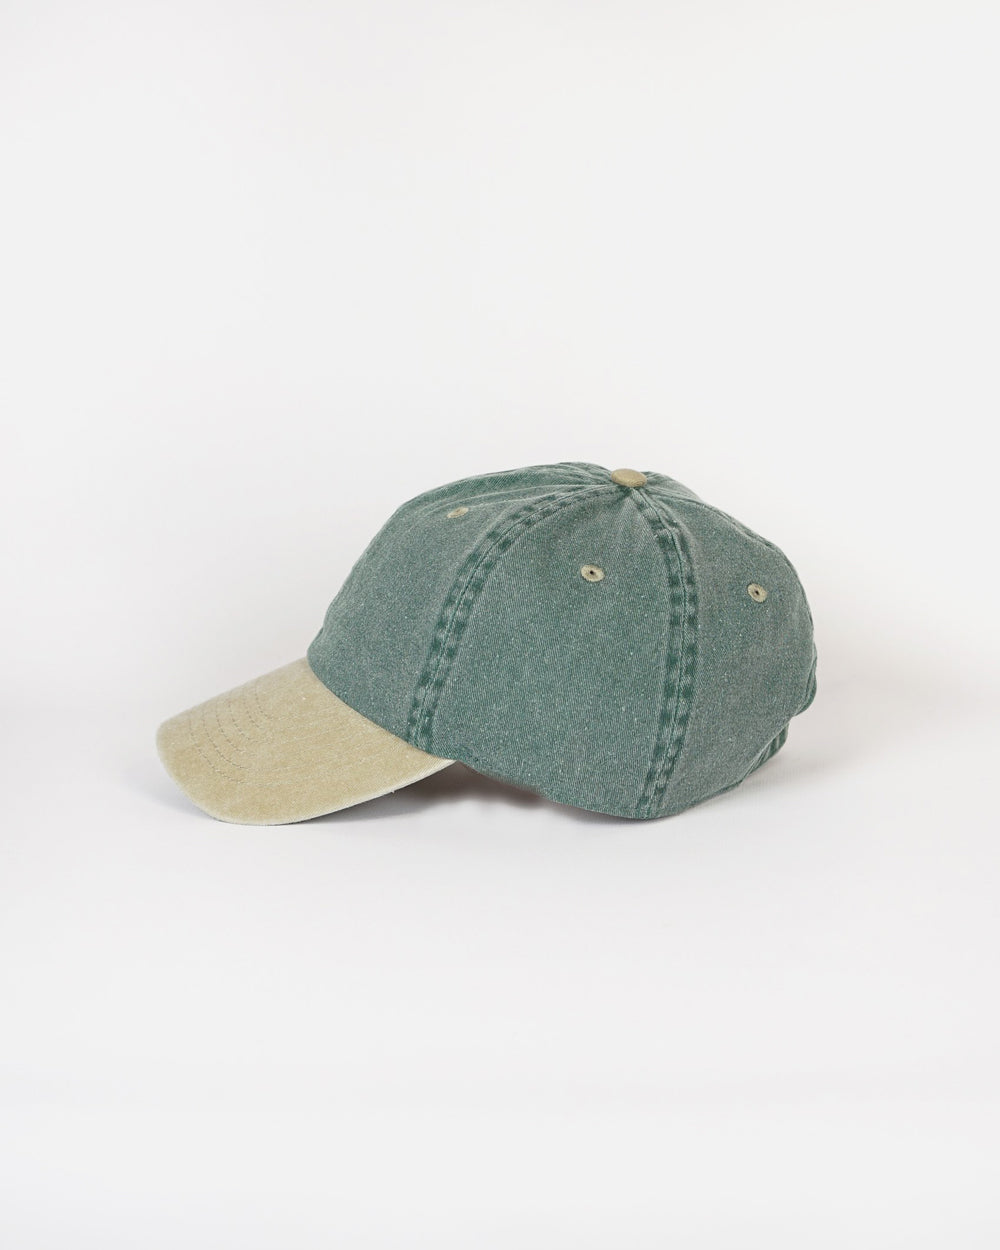 Washed Cotton 6-Panel Cap / Khaki x Green